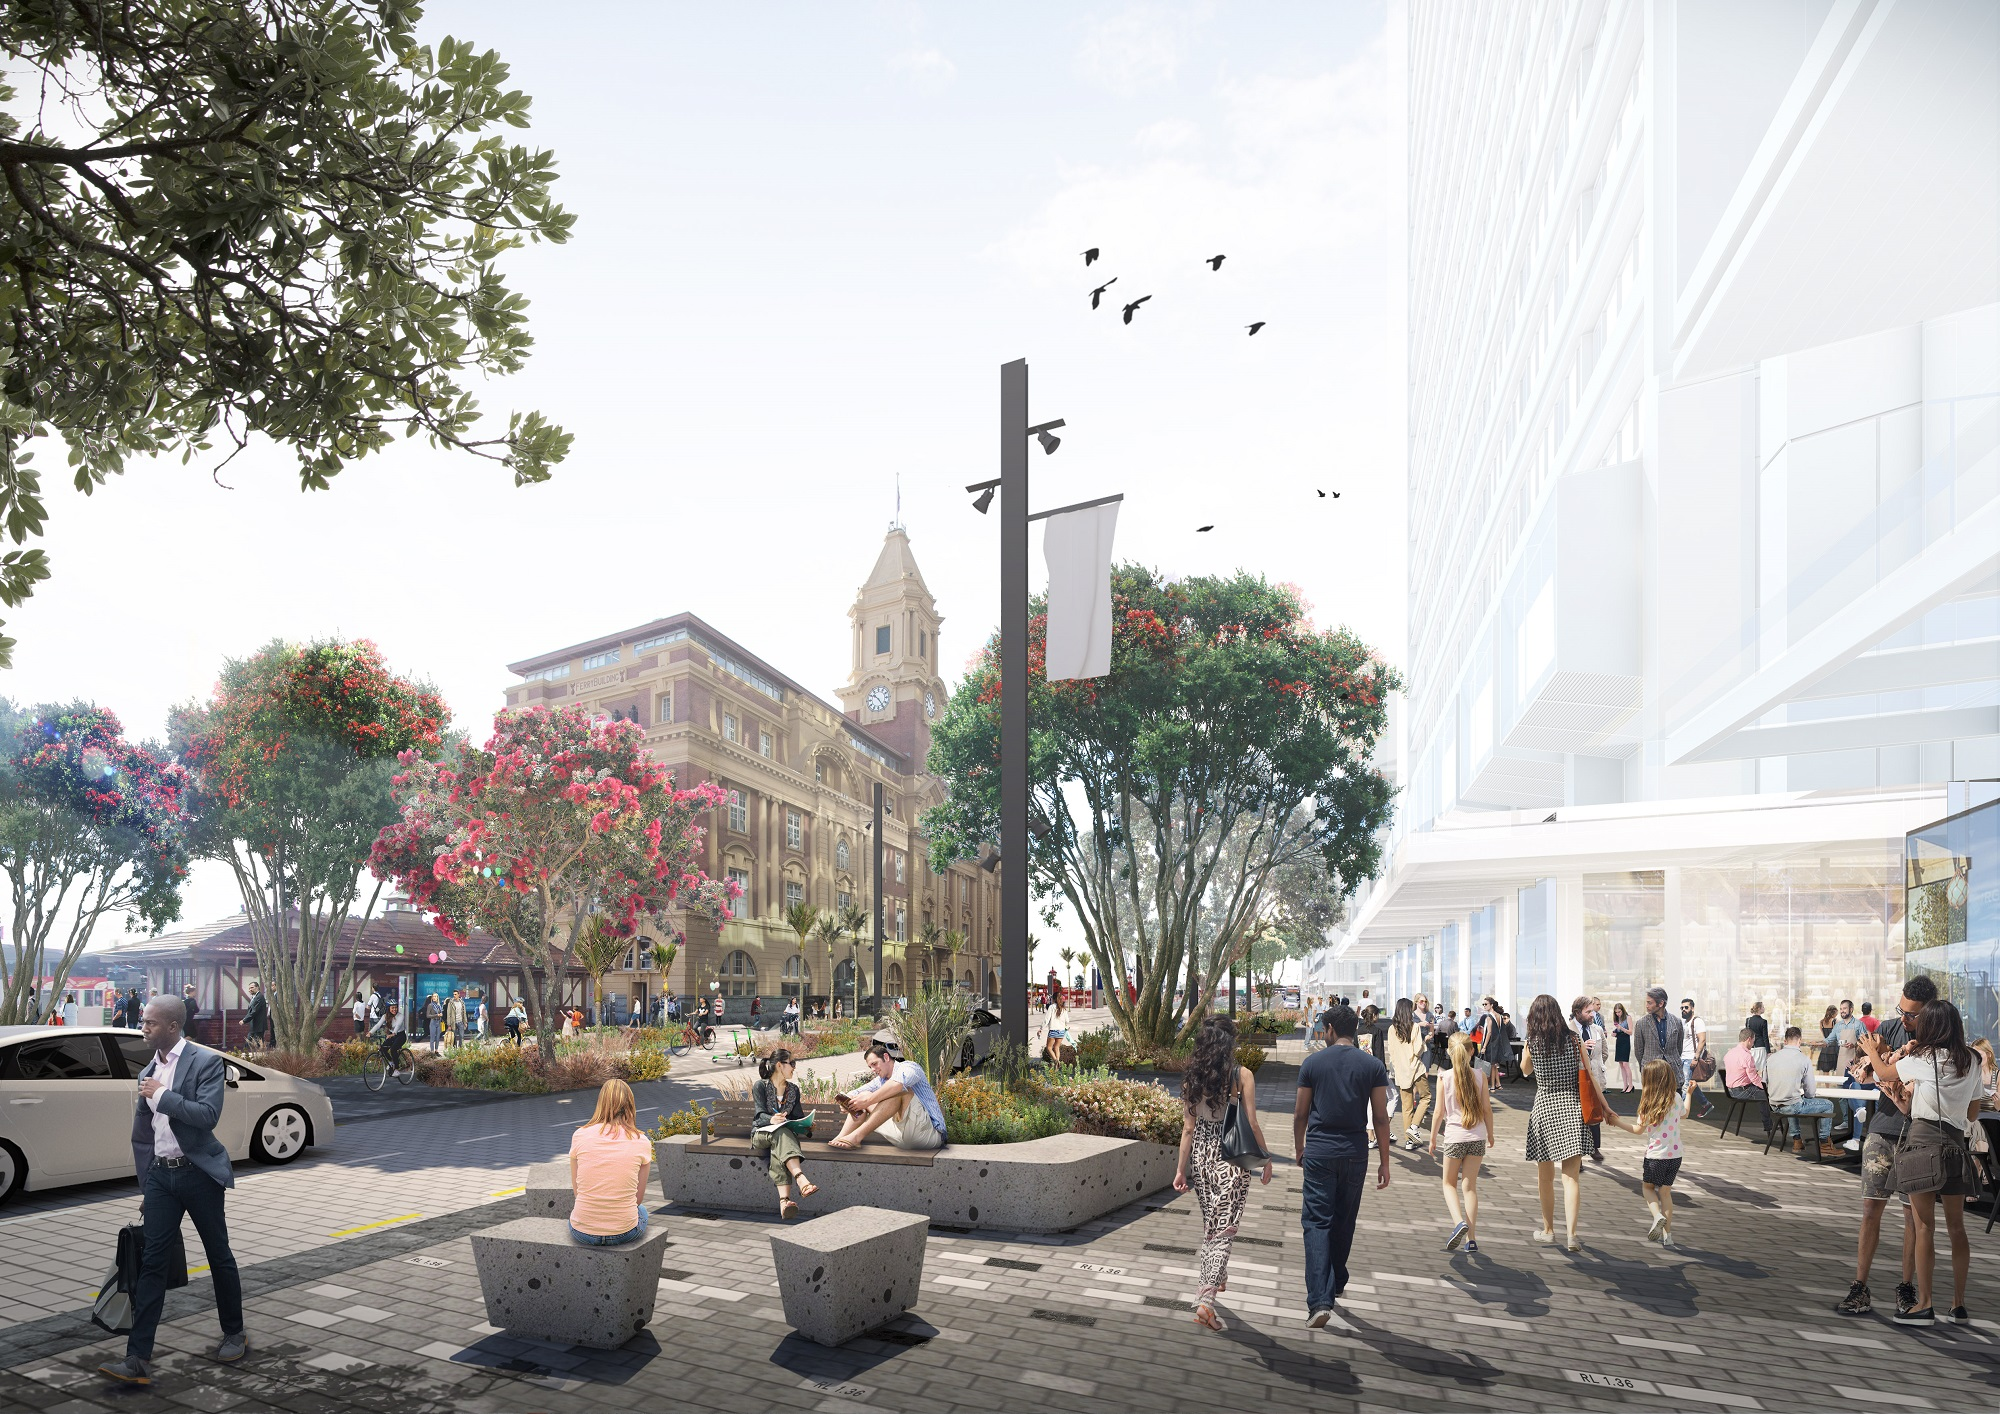 The new downtown aims to be a series of engaging destinations.